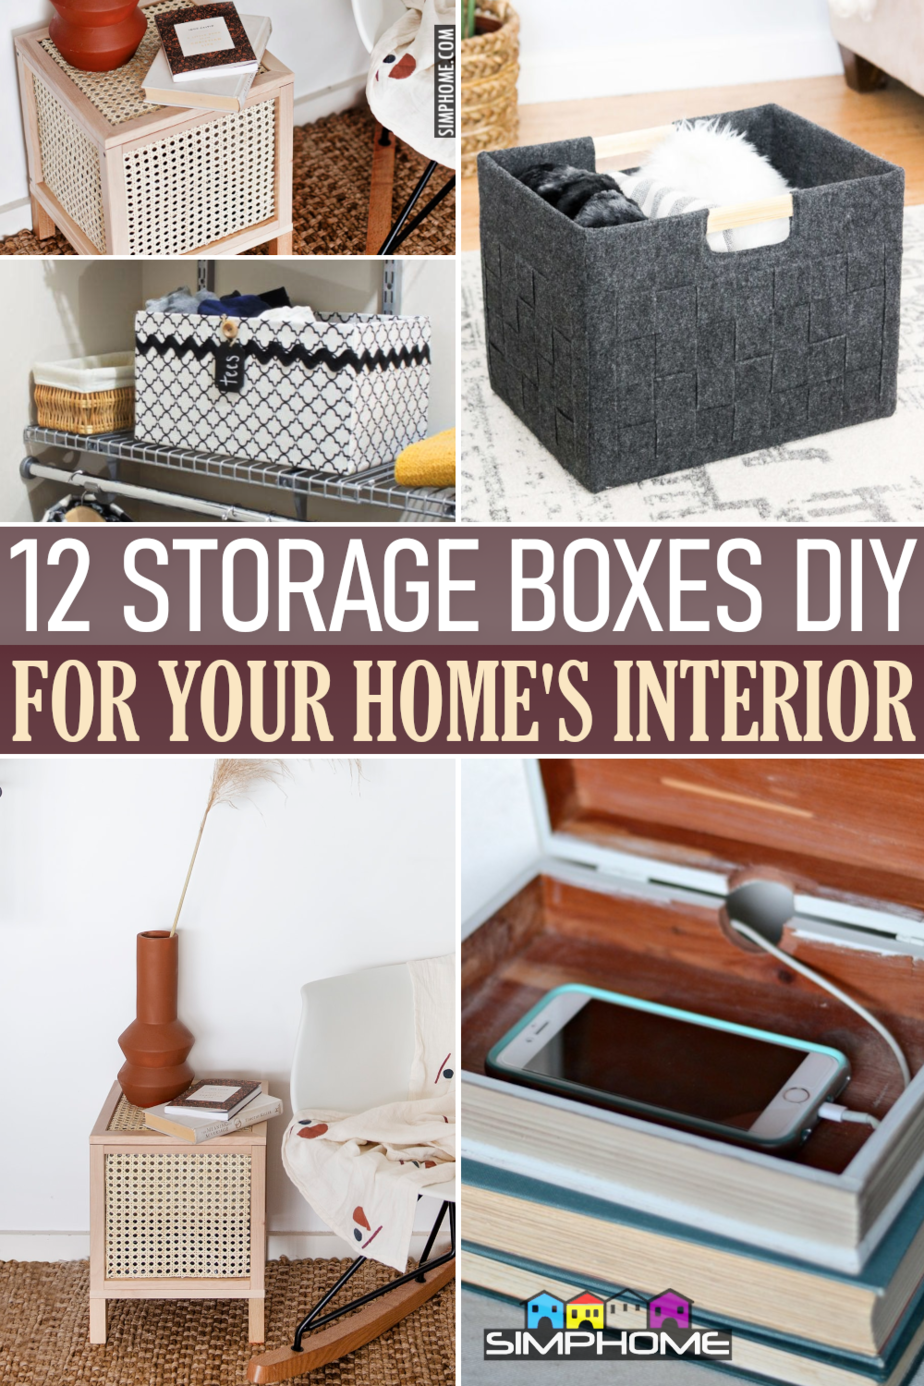 12 Storage Boxes ideas for bedroom kitchen and living room via Simphome.comFeatured